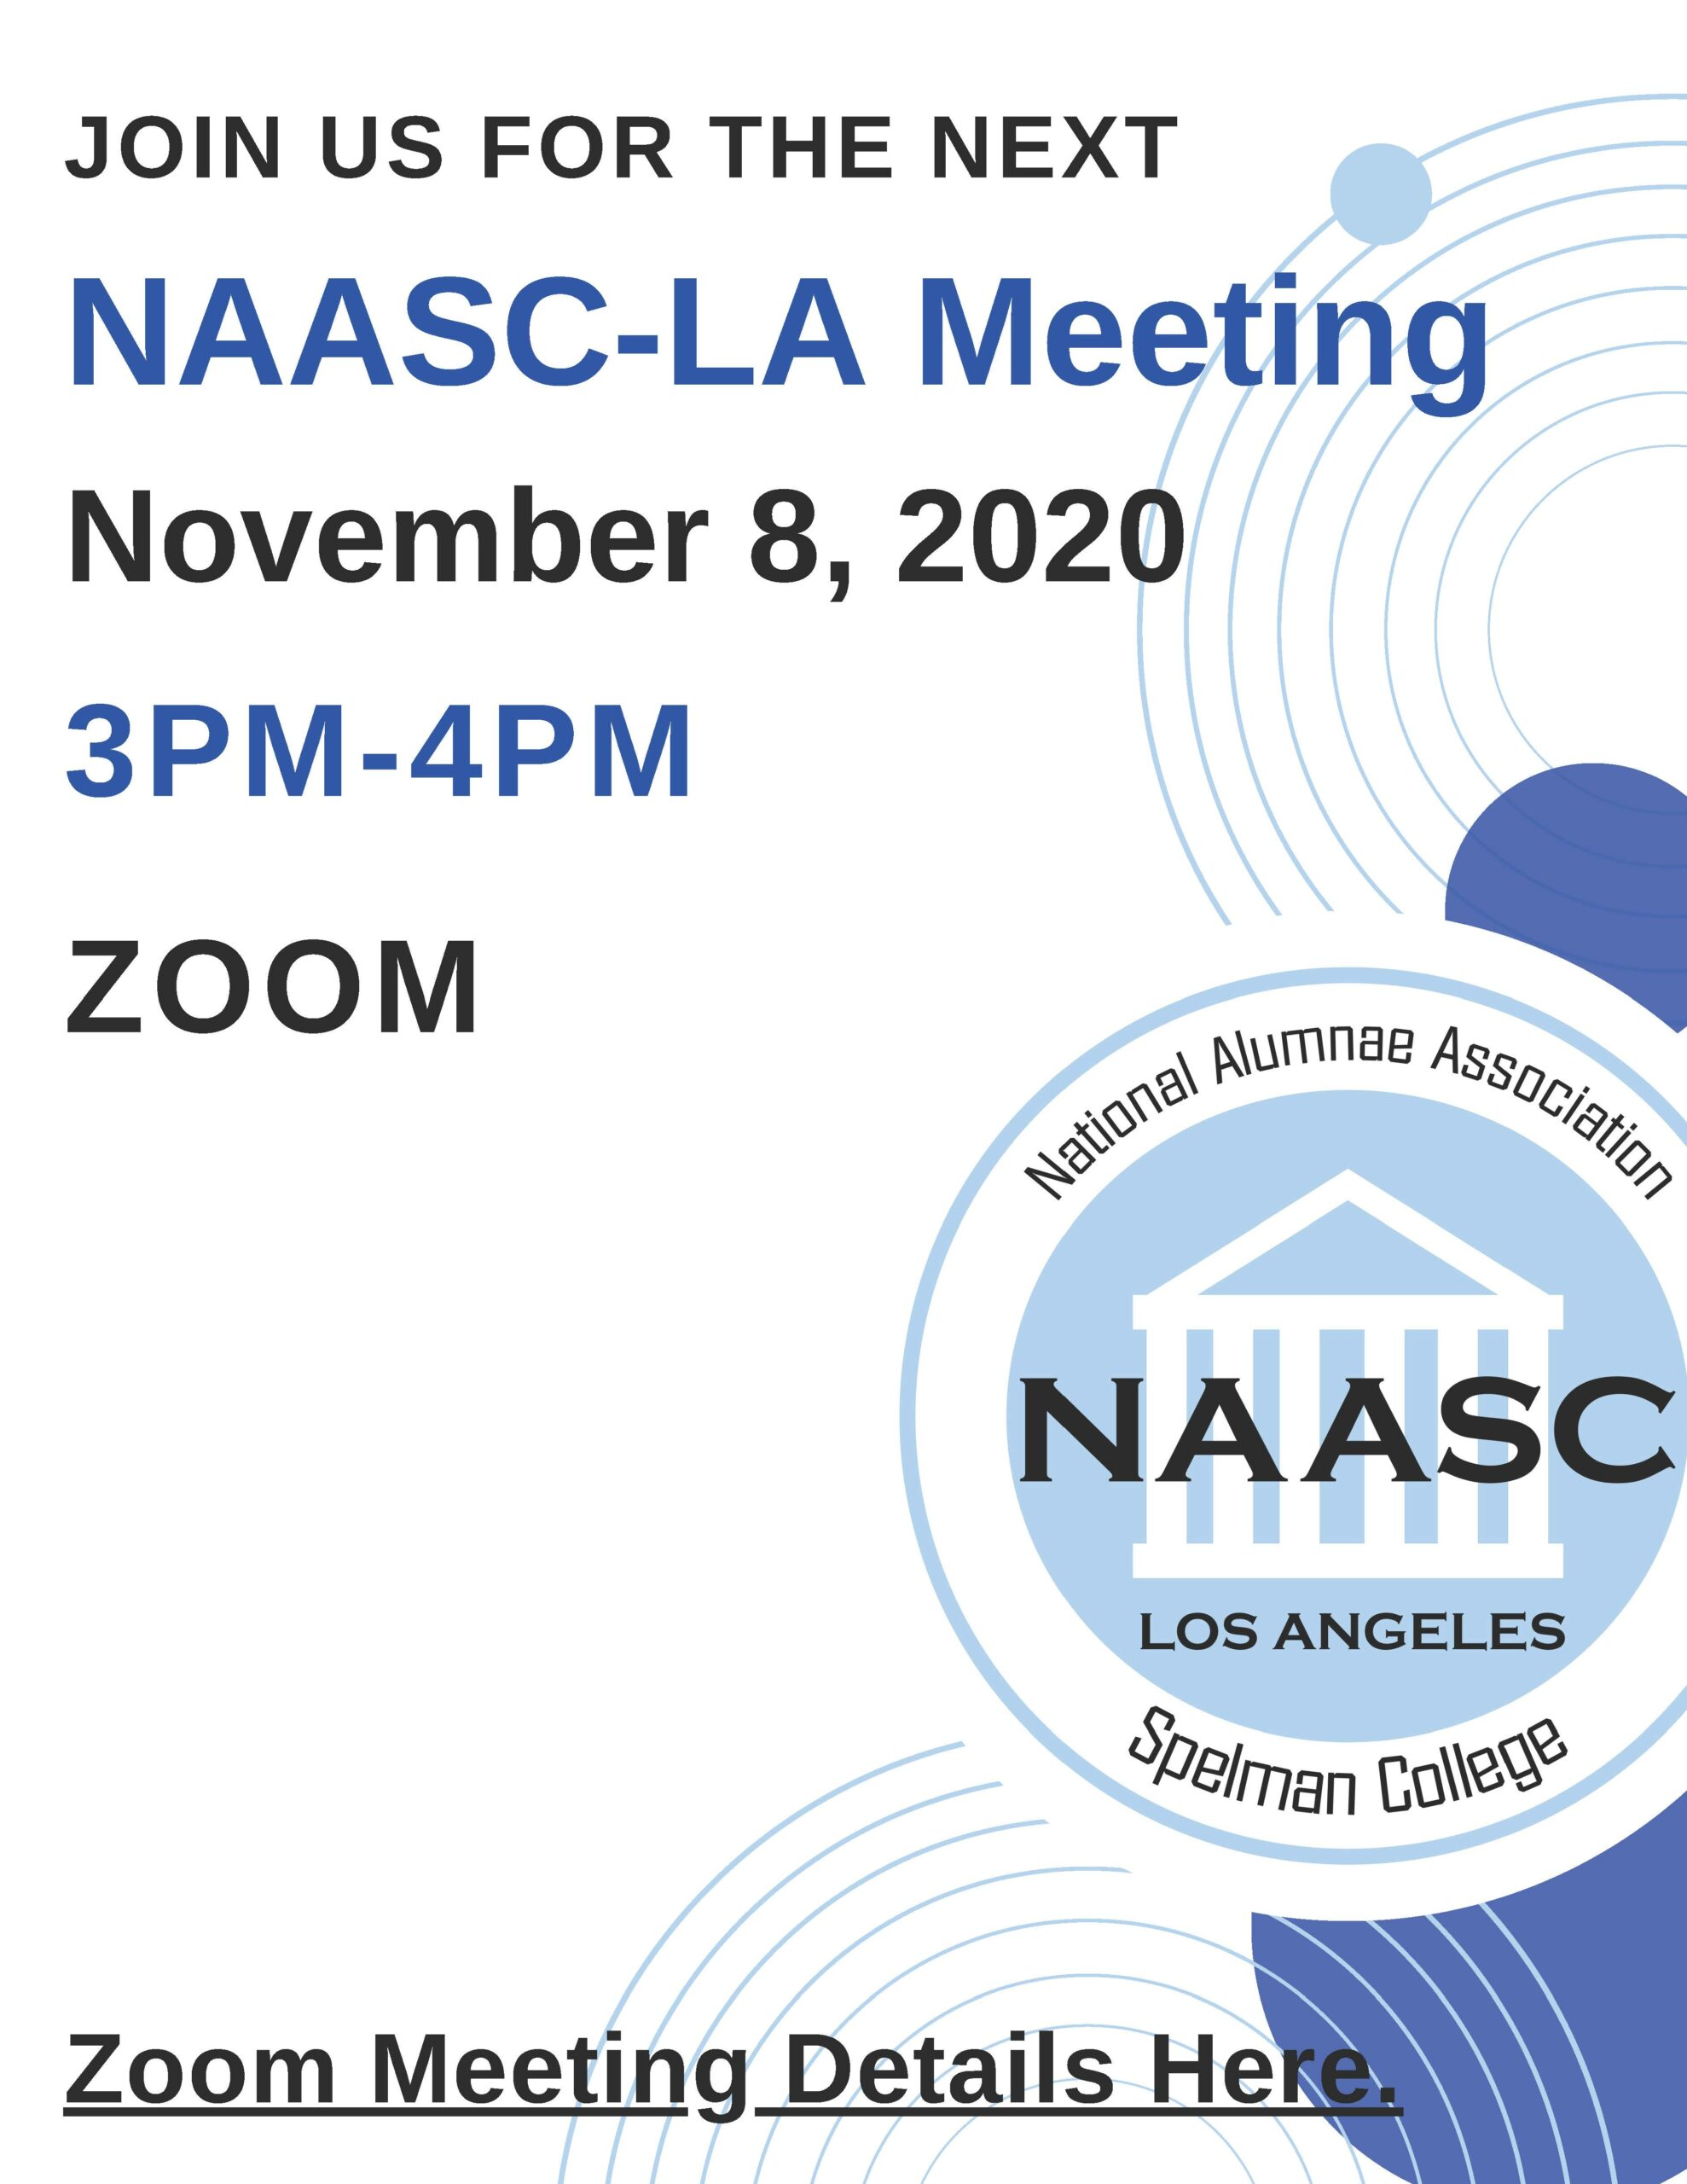 NAASC-LA gENERAL MEETING